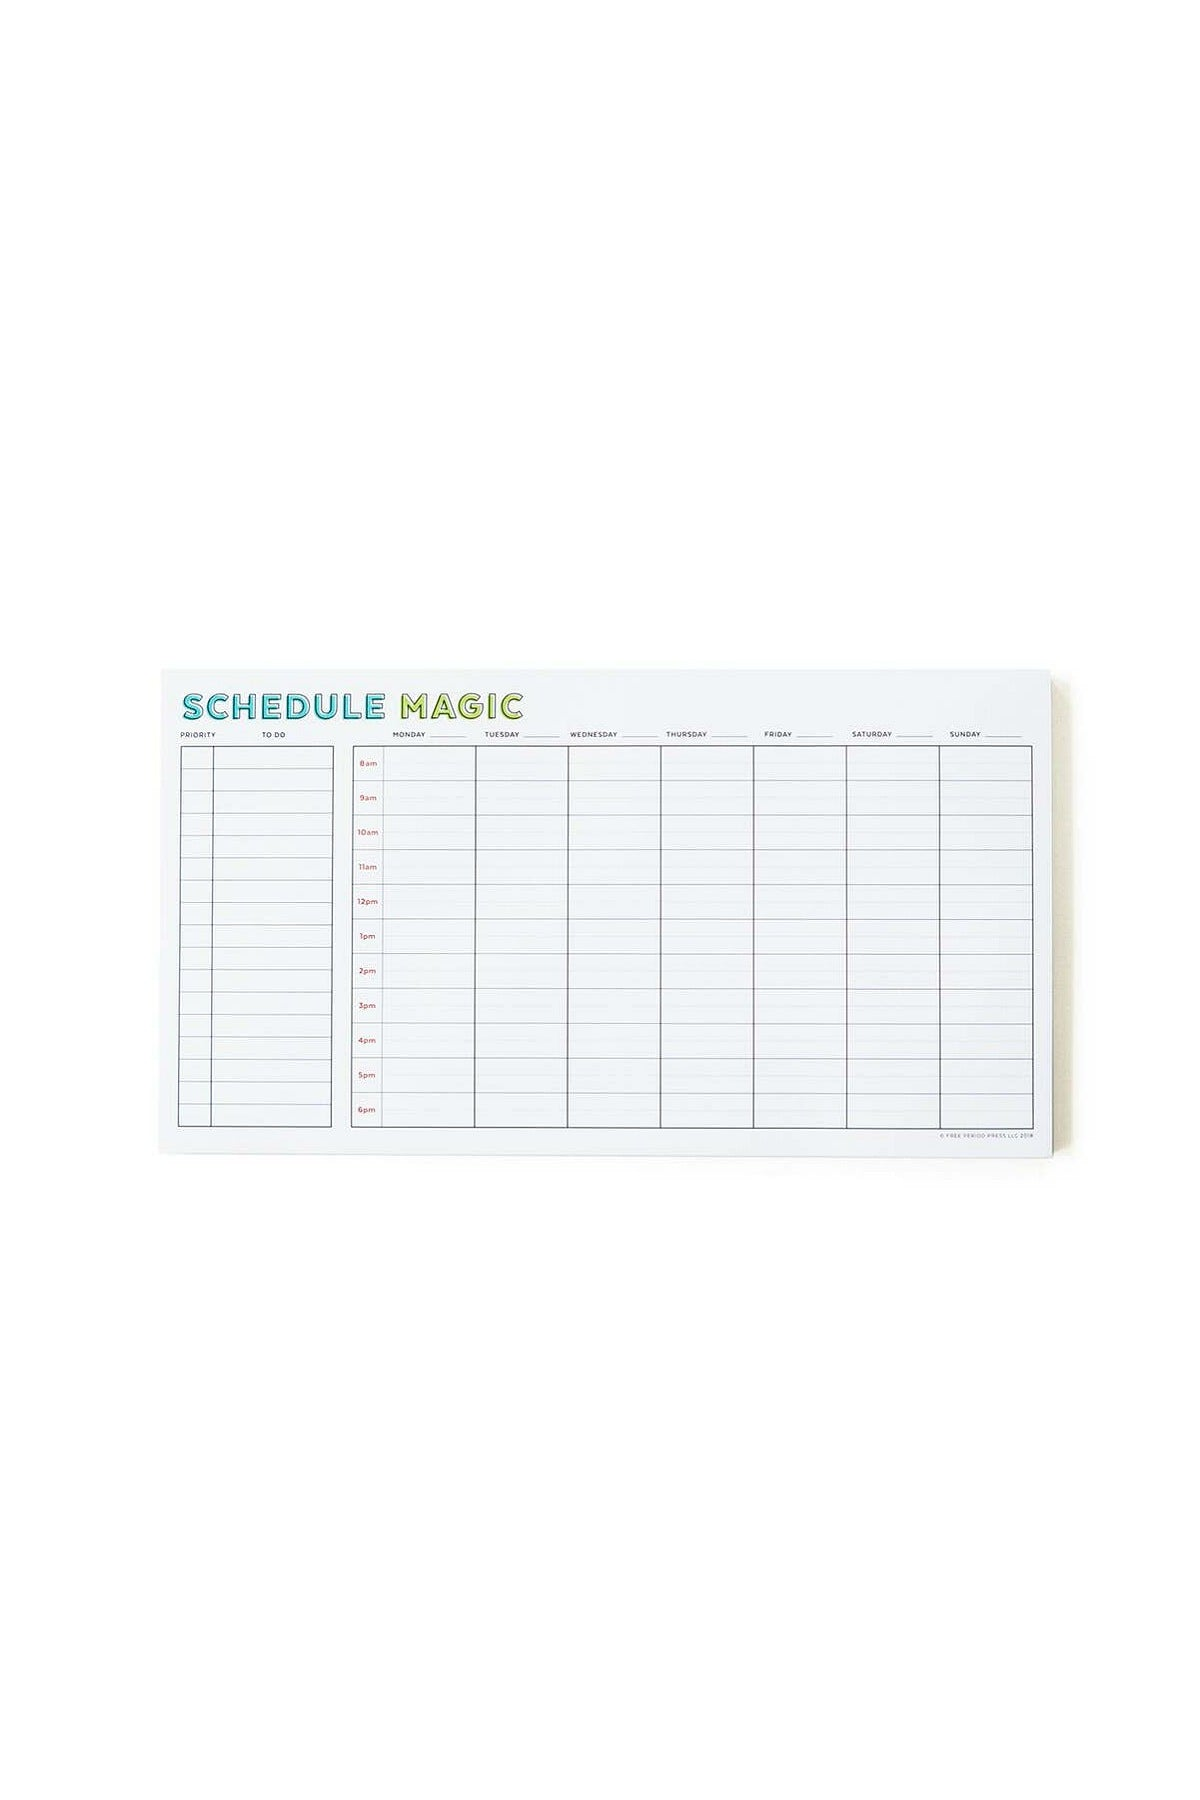 Weekly Schedule magic Notepad